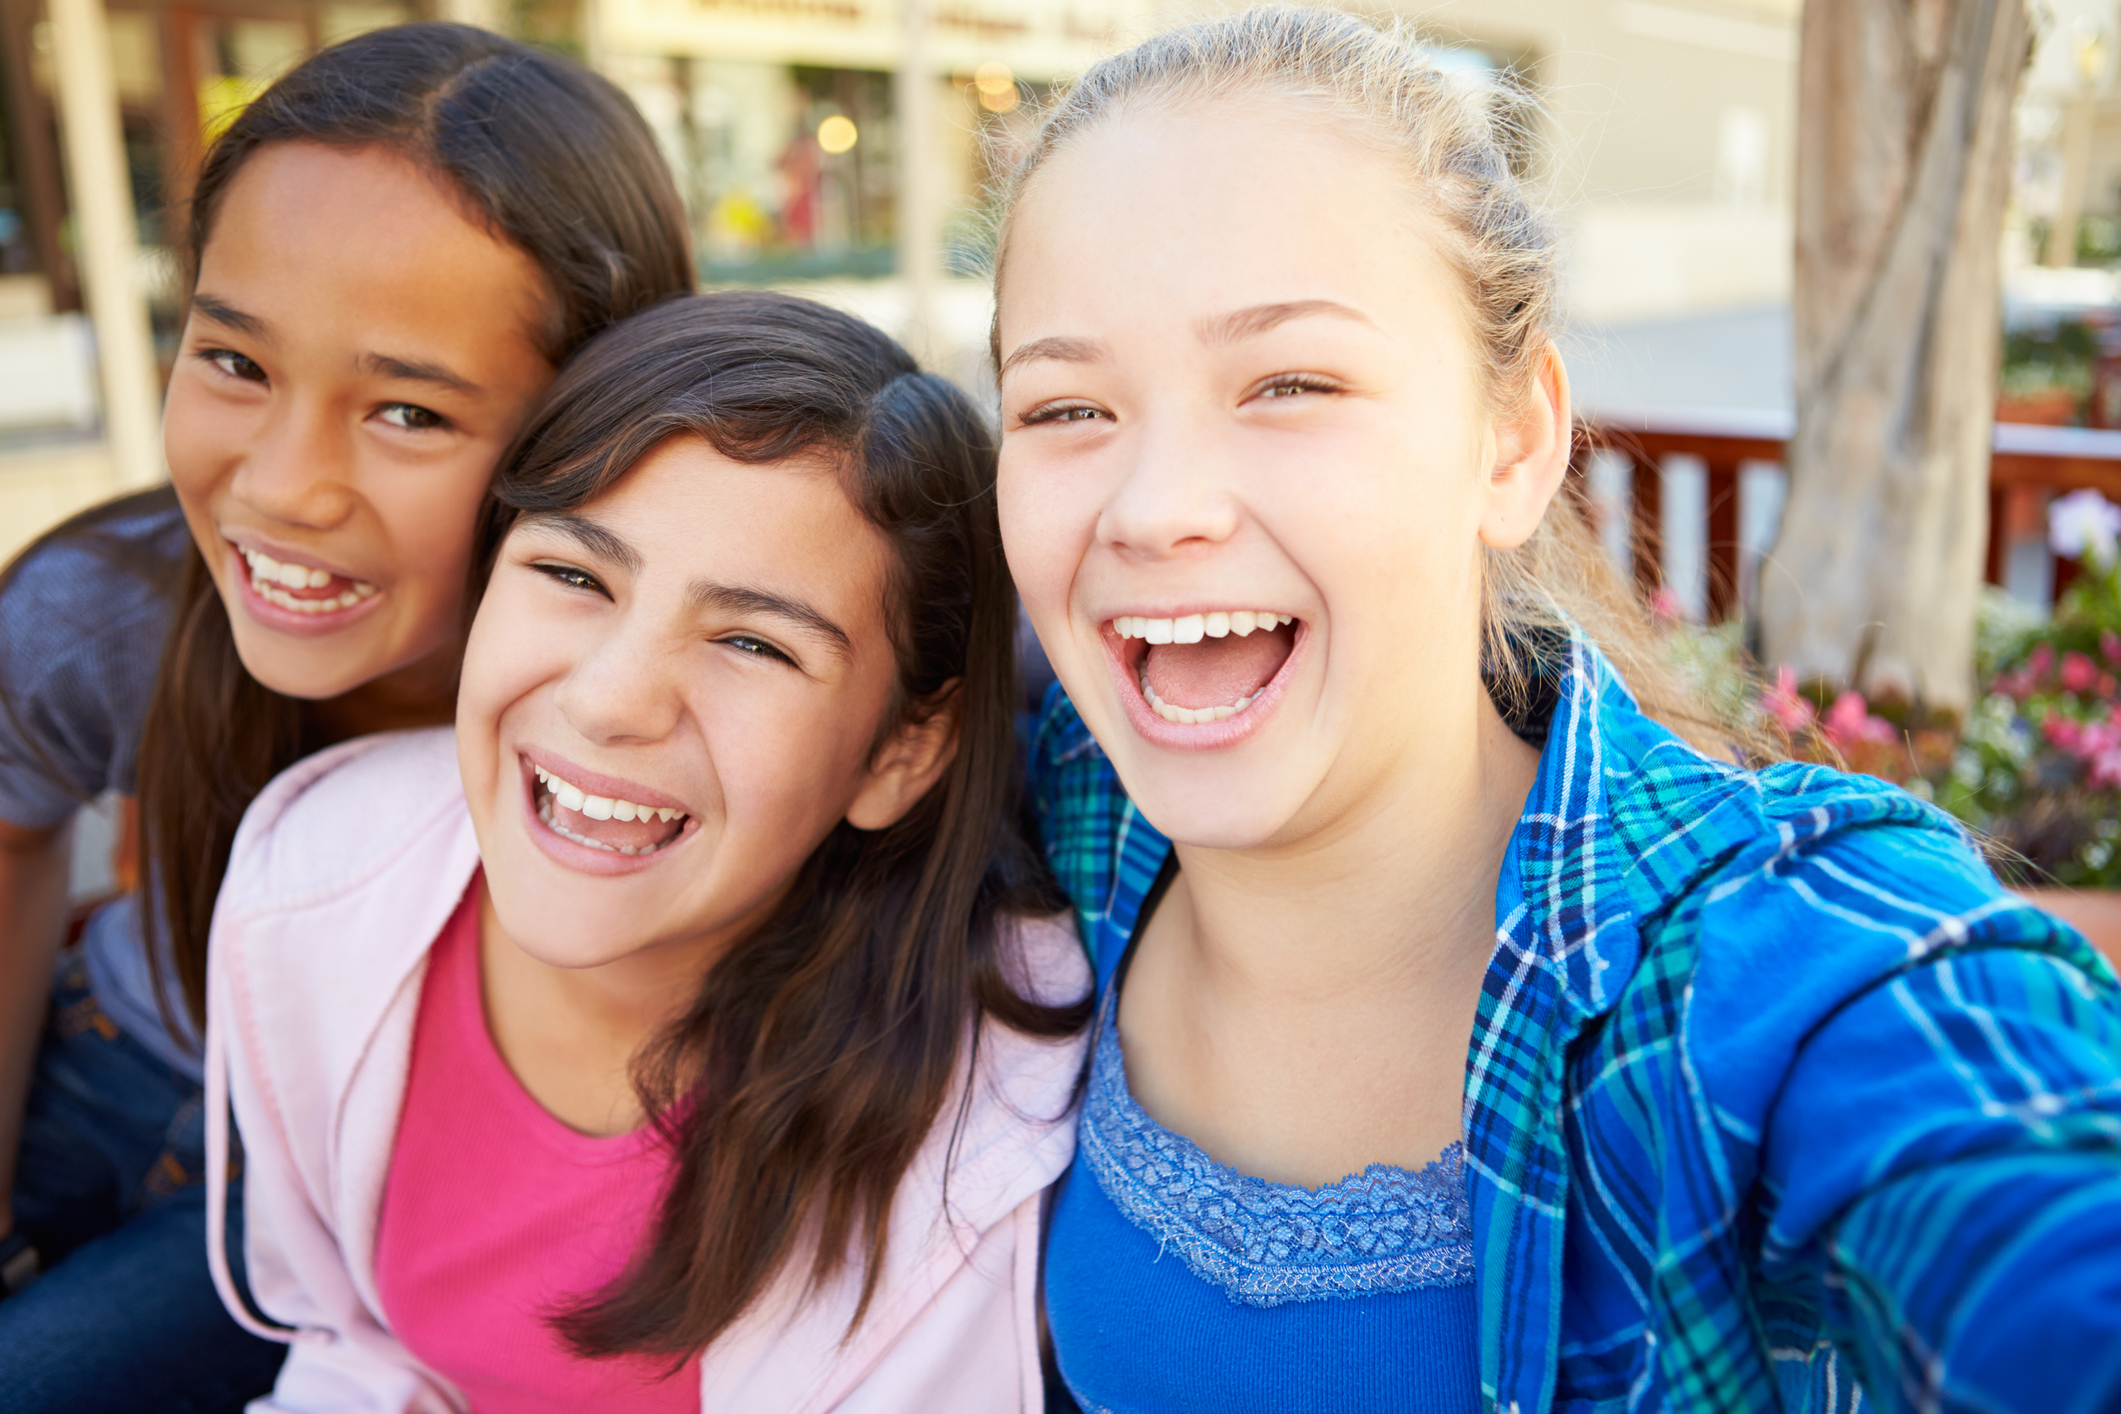 Group of 3 Smiling Large.jpg